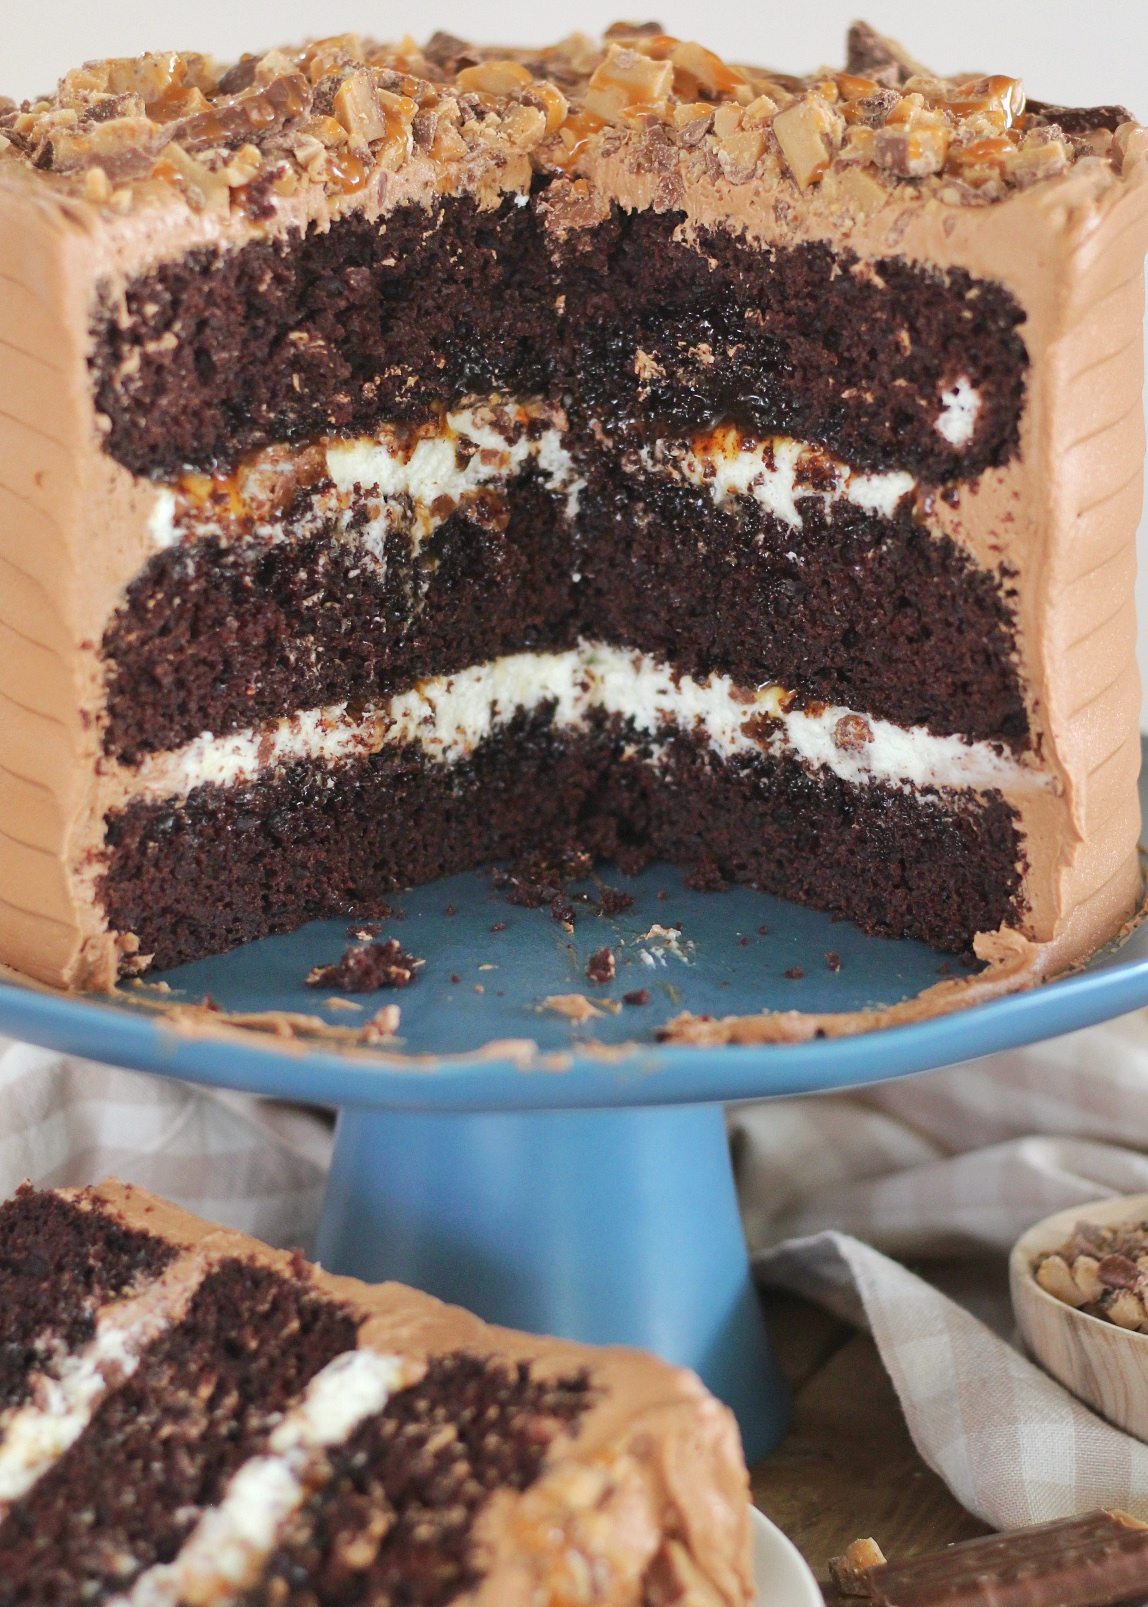 Layers of the Better Than Anything Cake